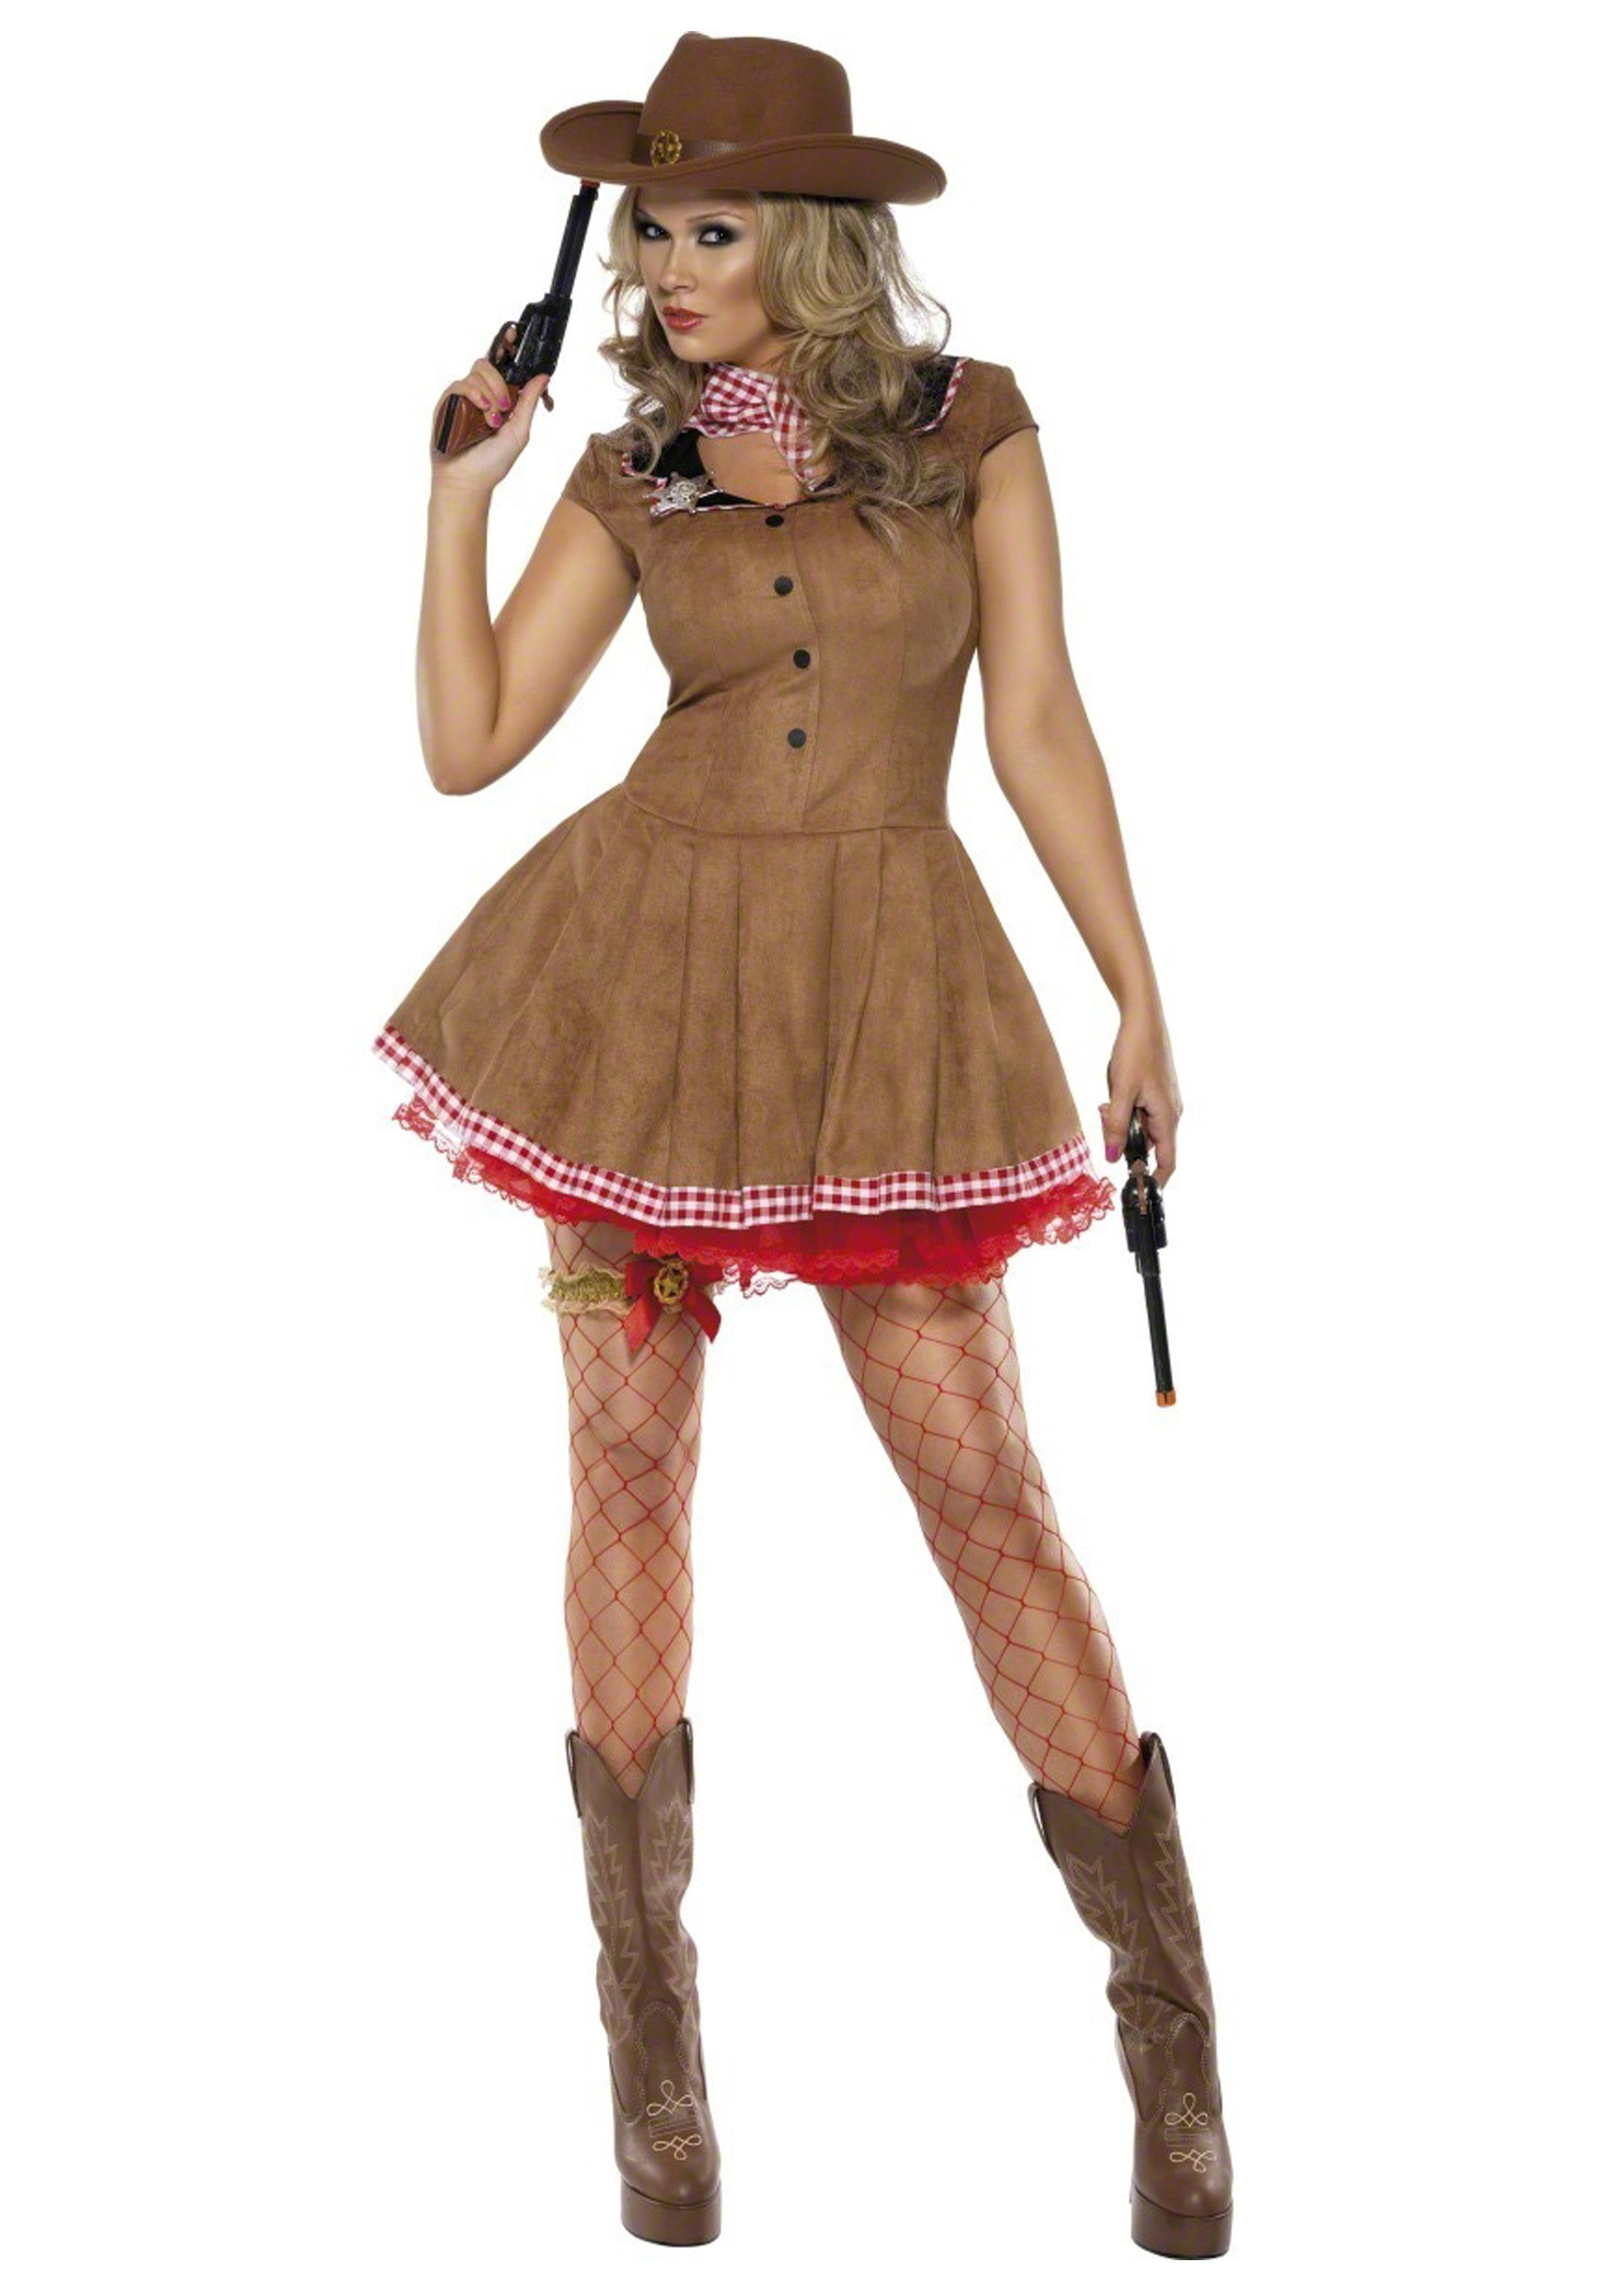 Wild West Clothing http://www.ebay.com/itm/Adult-Wild-West-Cowgirl-Costume-/251159599420